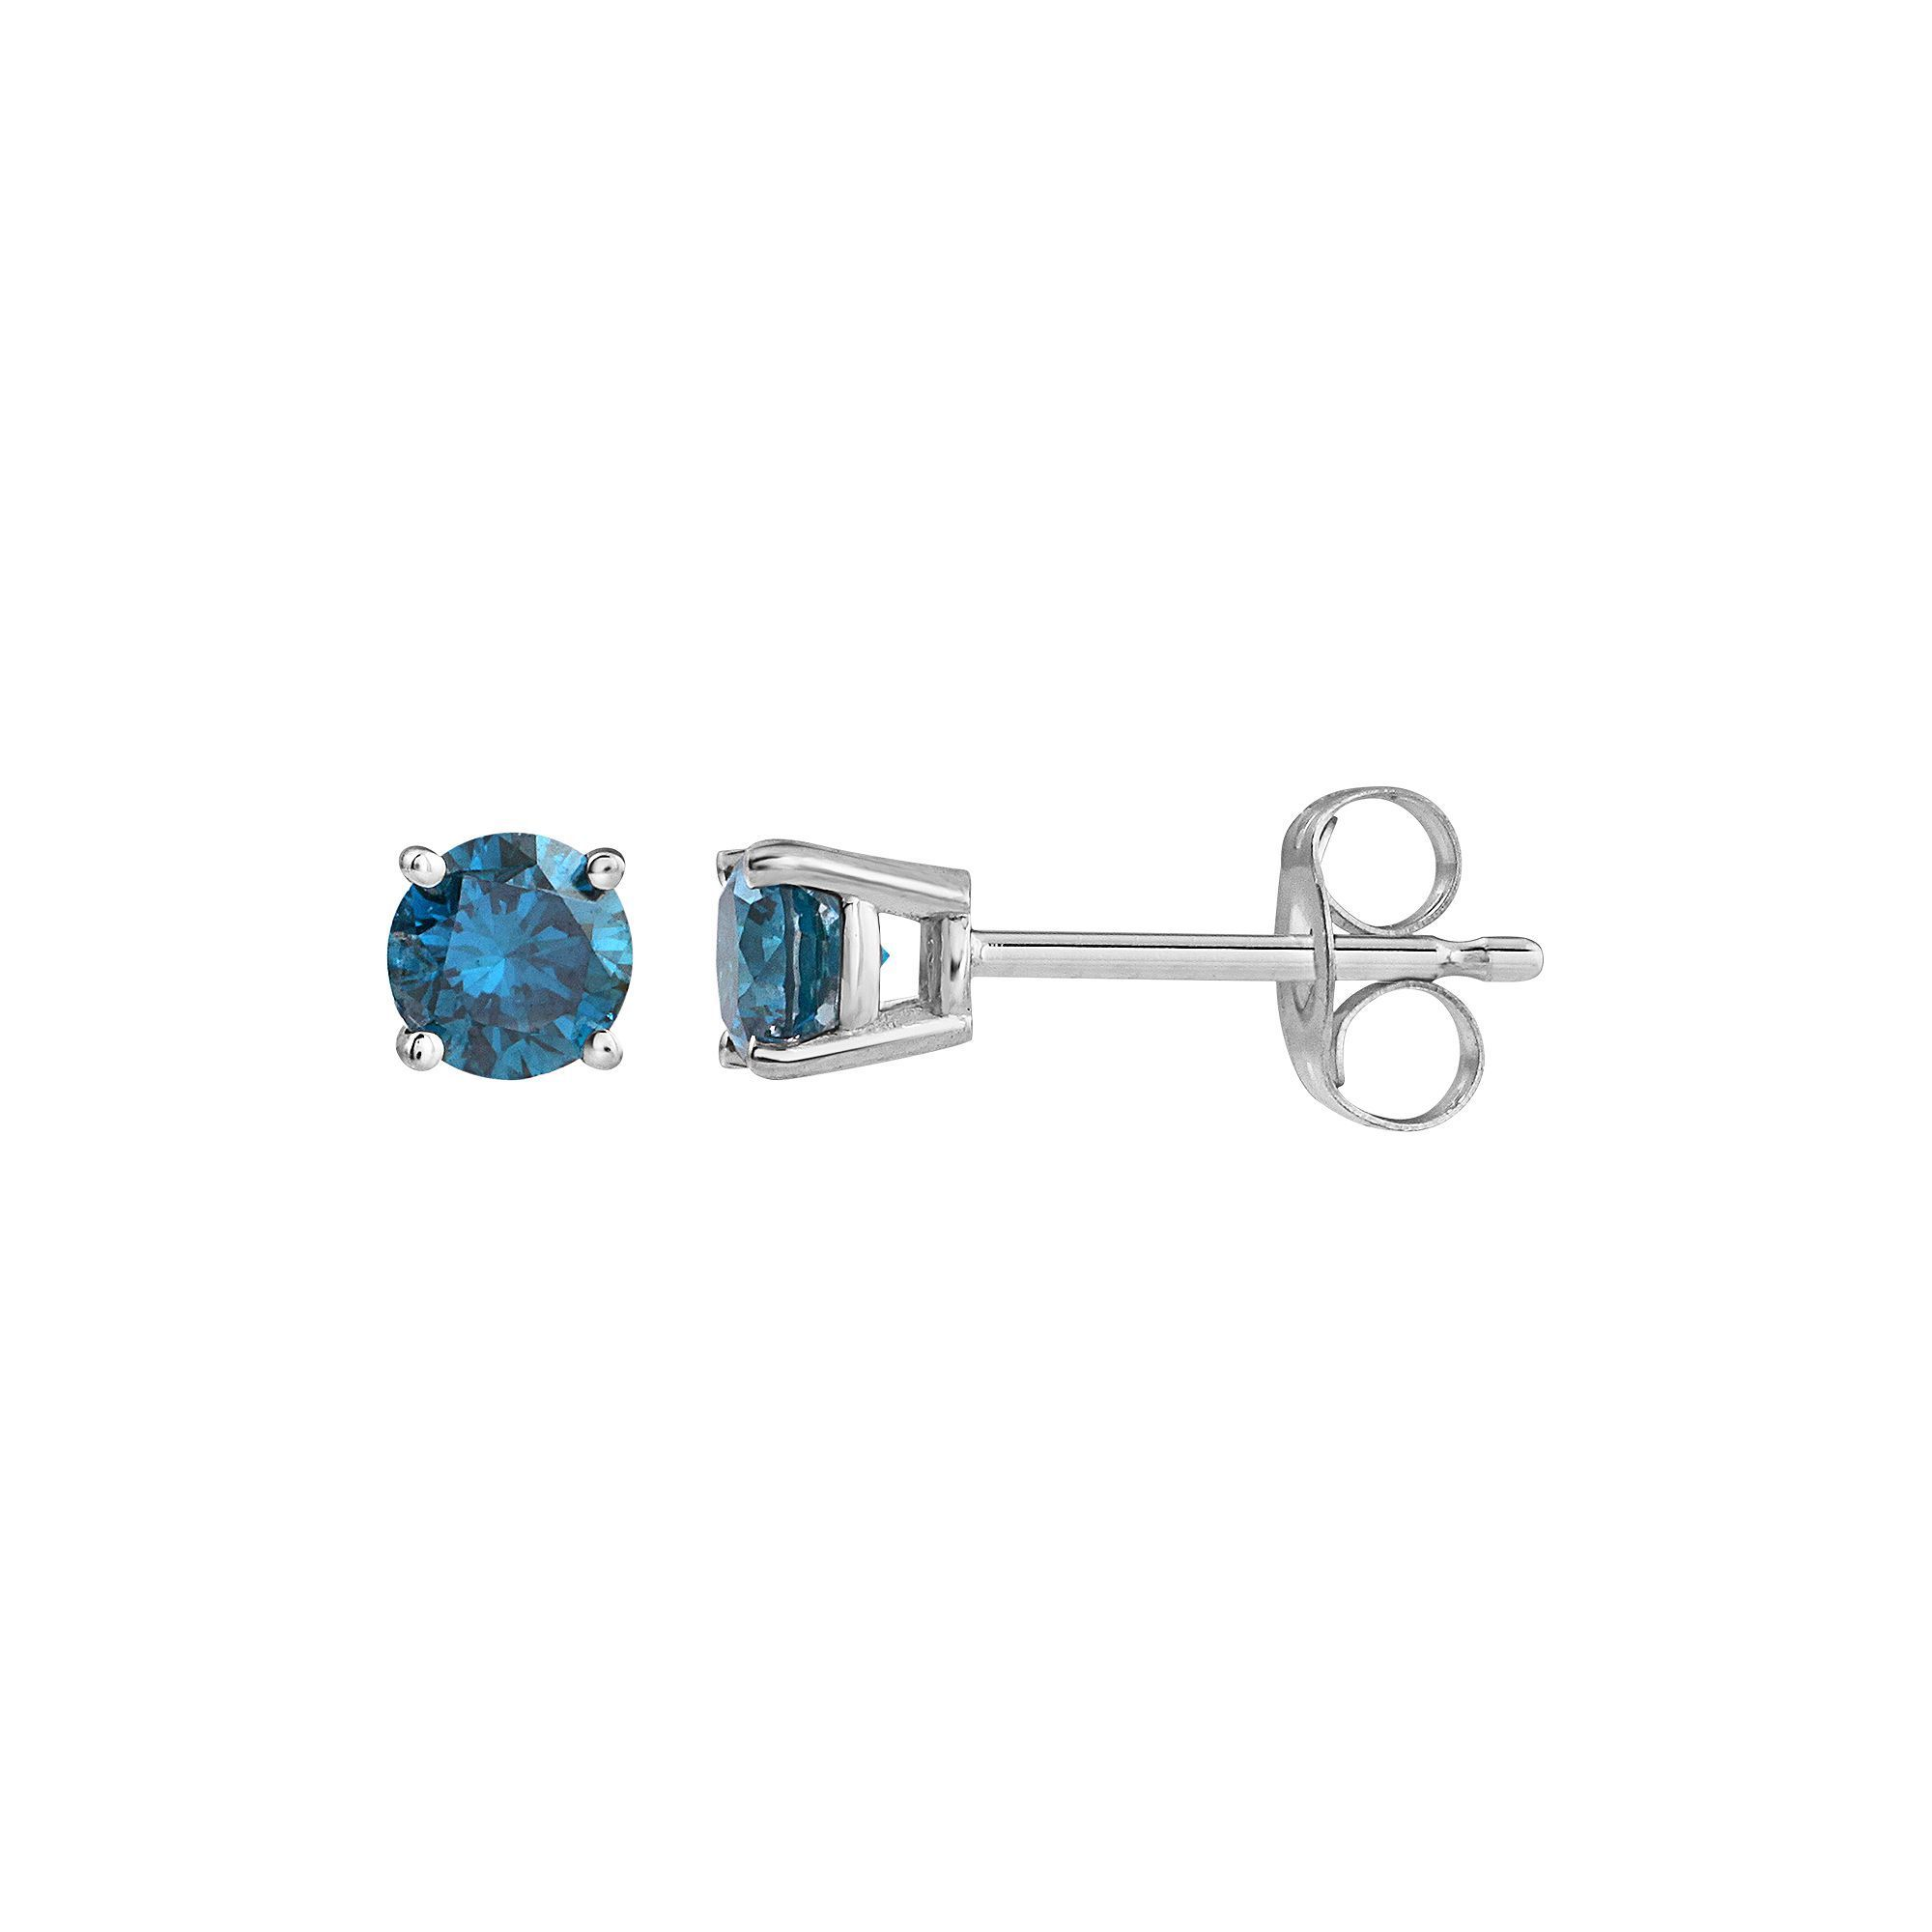 silver topaz birks blue bee earrings en chic diamond stud